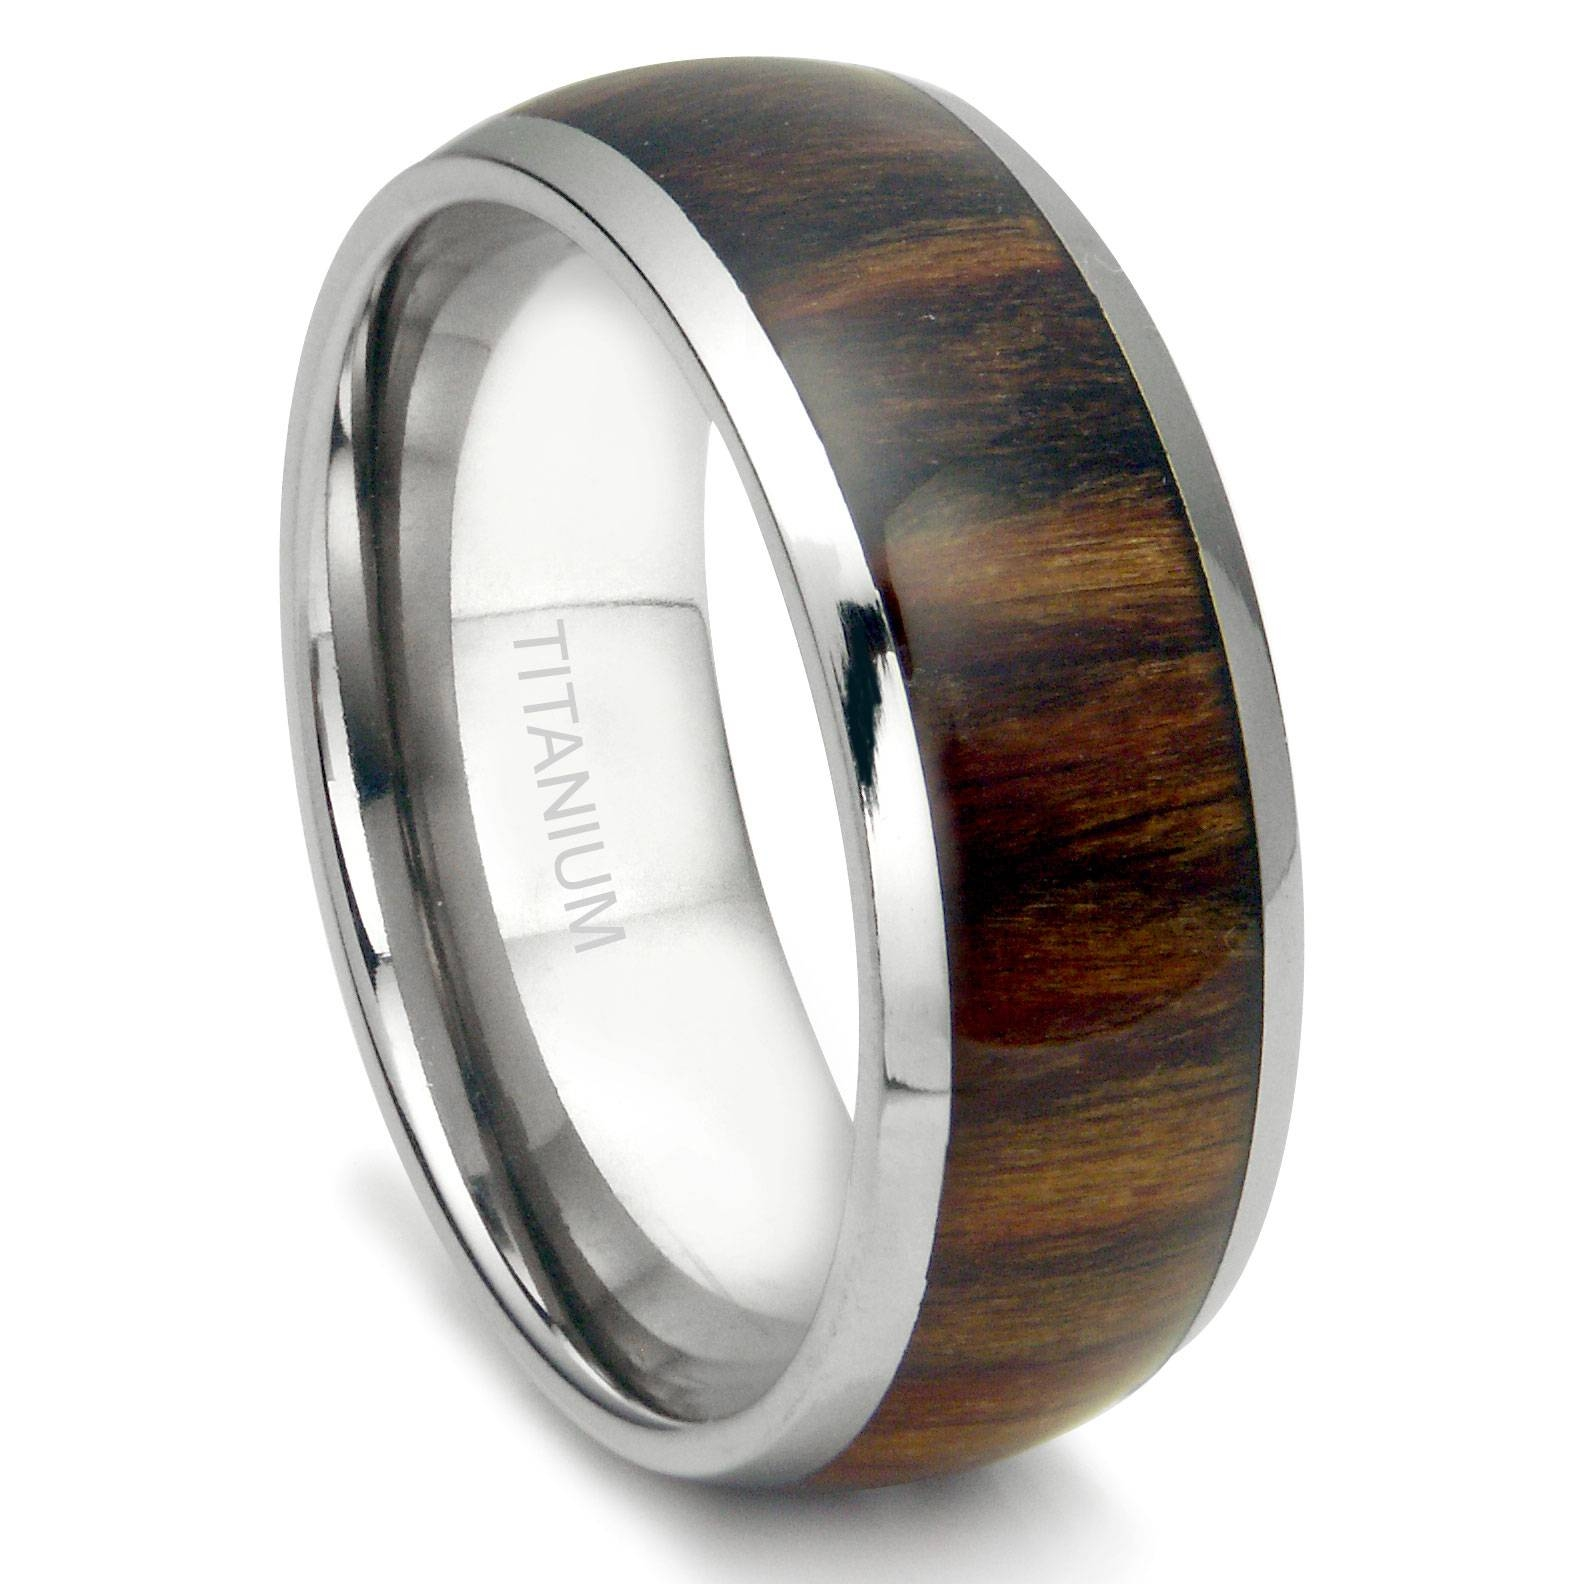 Titanium 8Mm Domed Santos Rosewood Inlay Wedding Band Ring Pertaining To Titanium Mens Wedding Rings (View 11 of 15)